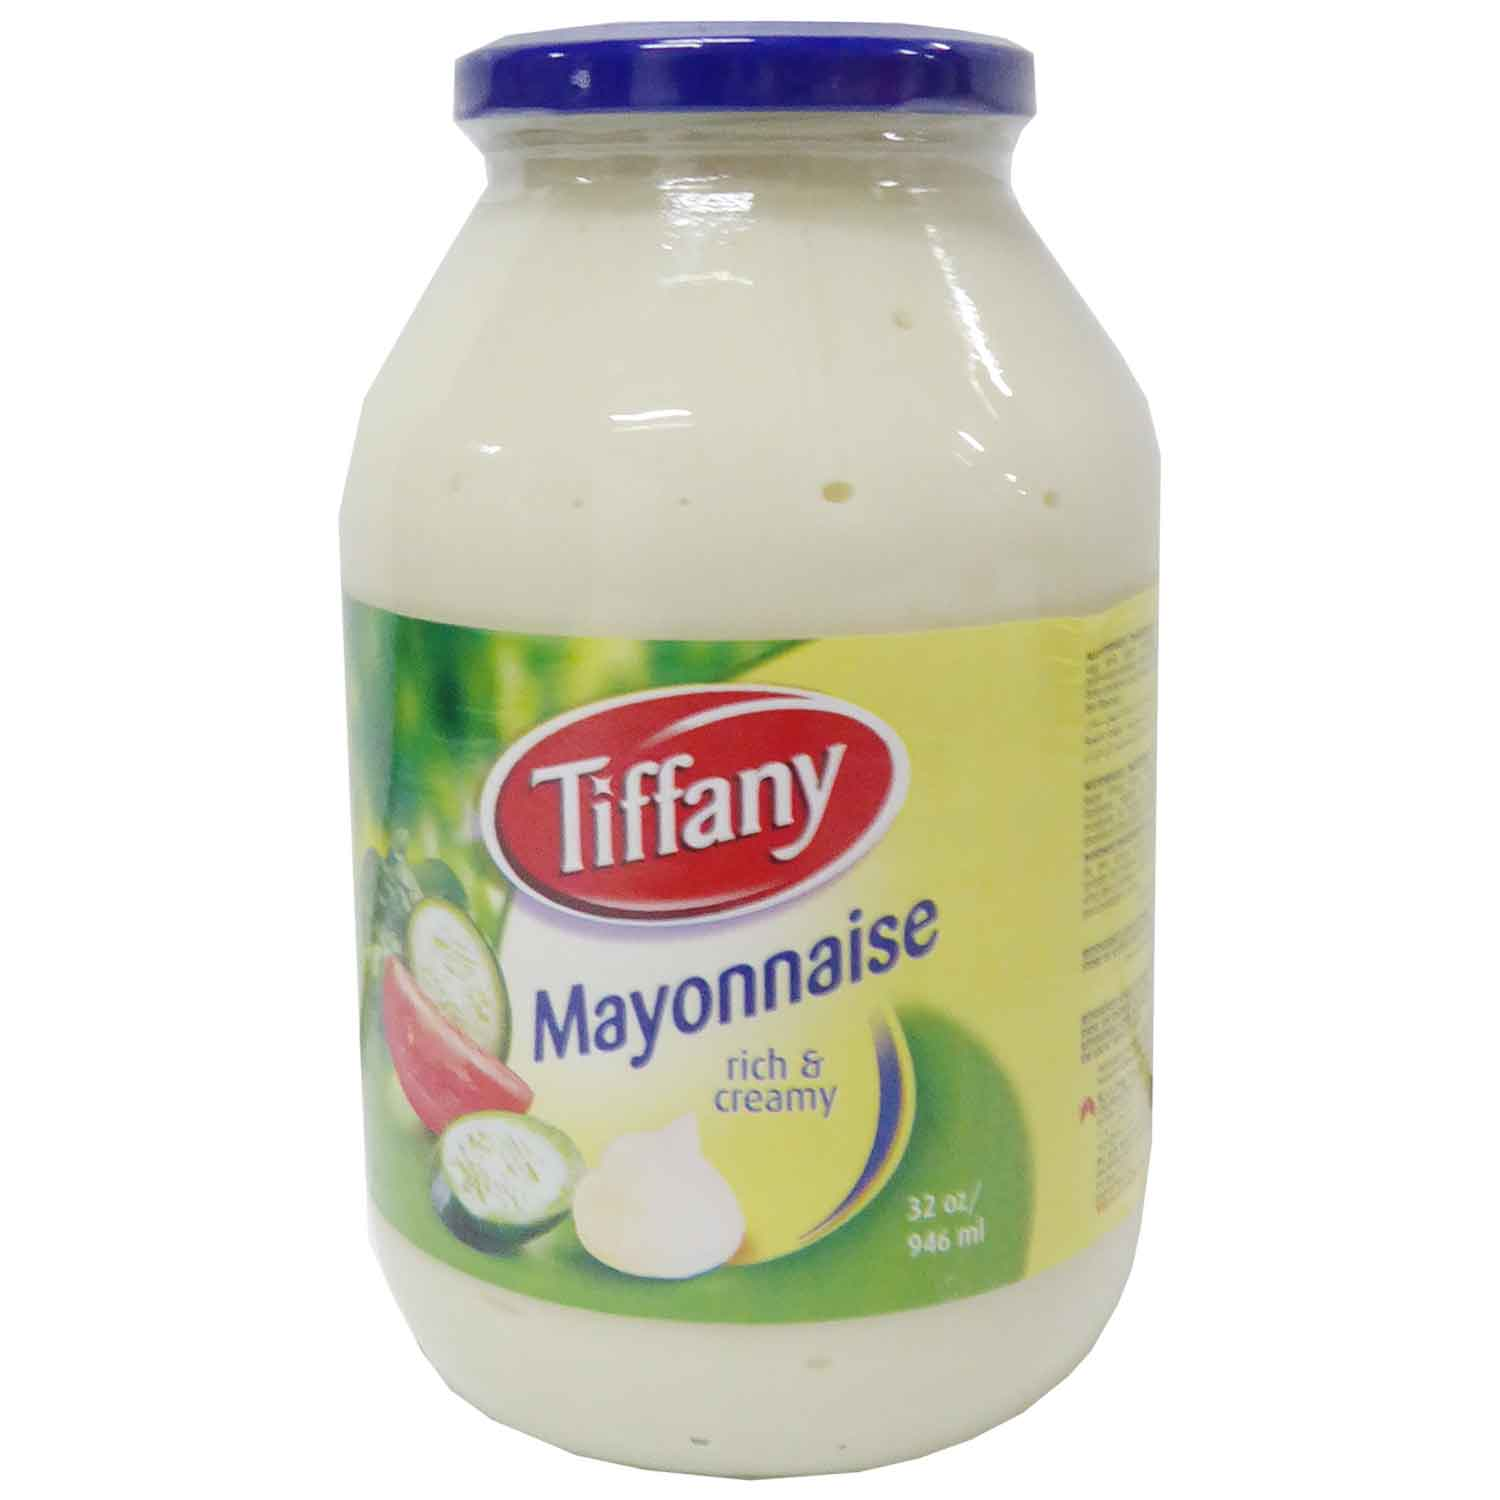 Tiffany Mayonnaise